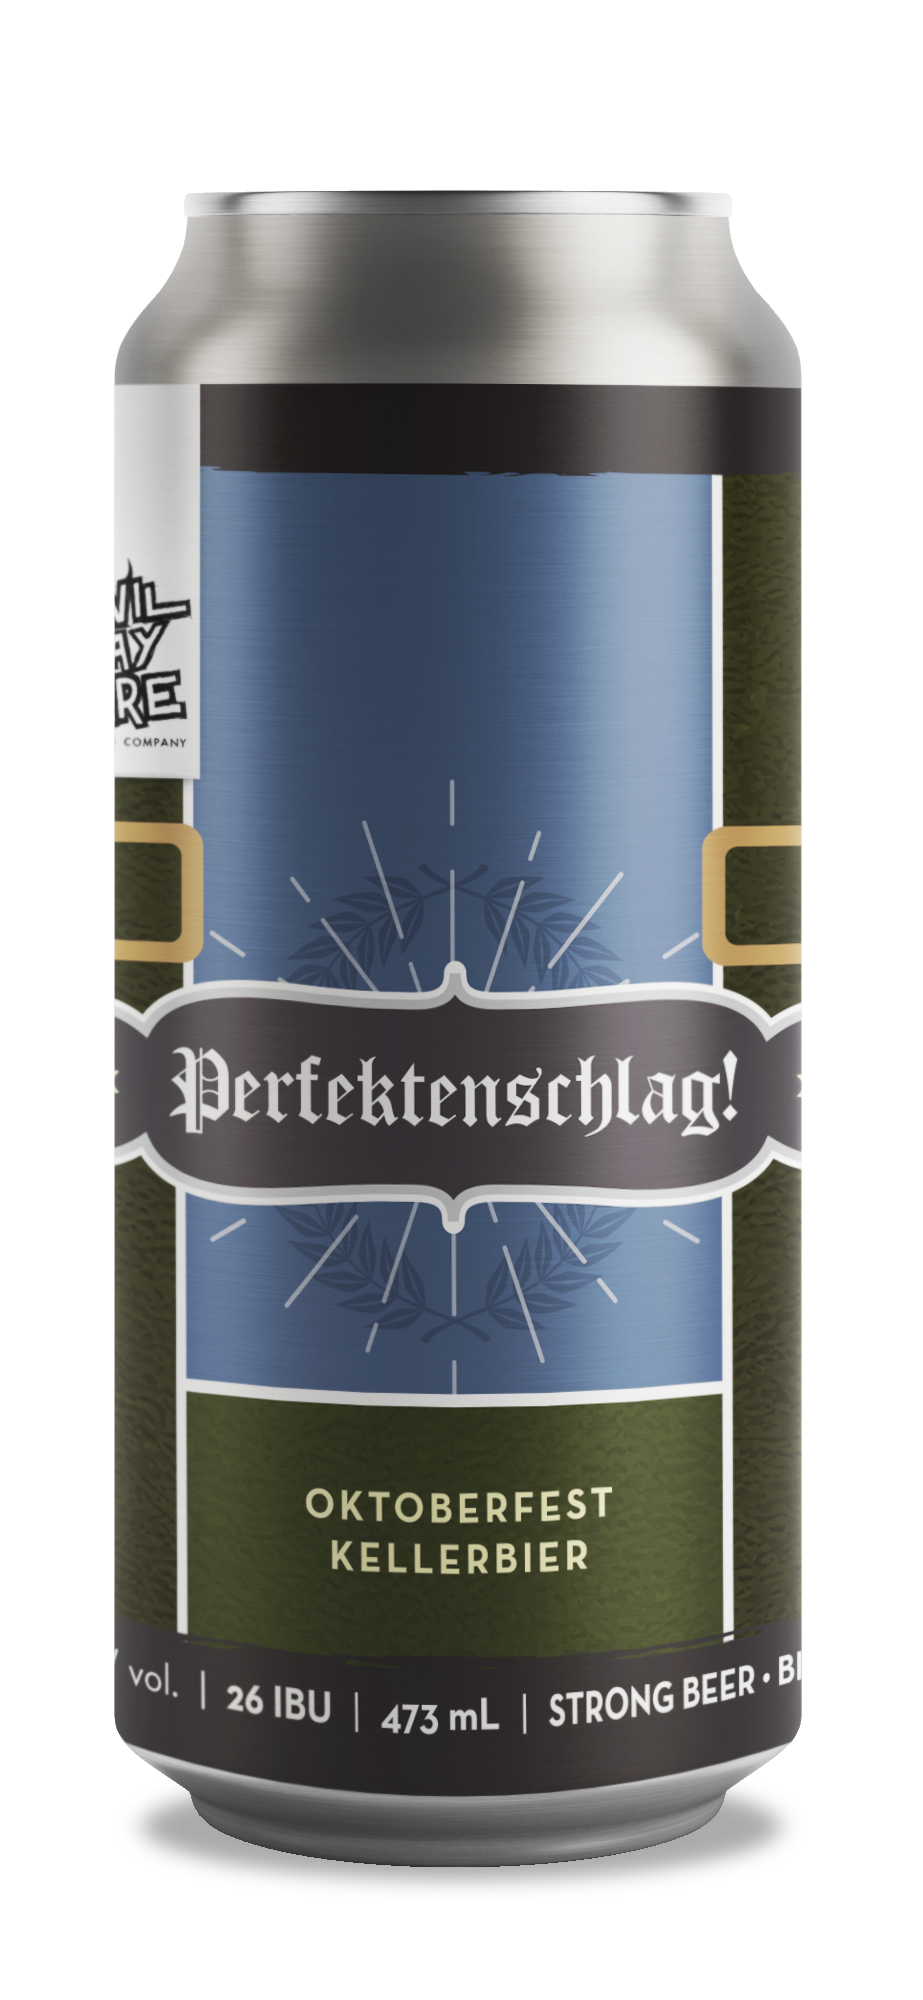 Can of Perfektenschlag